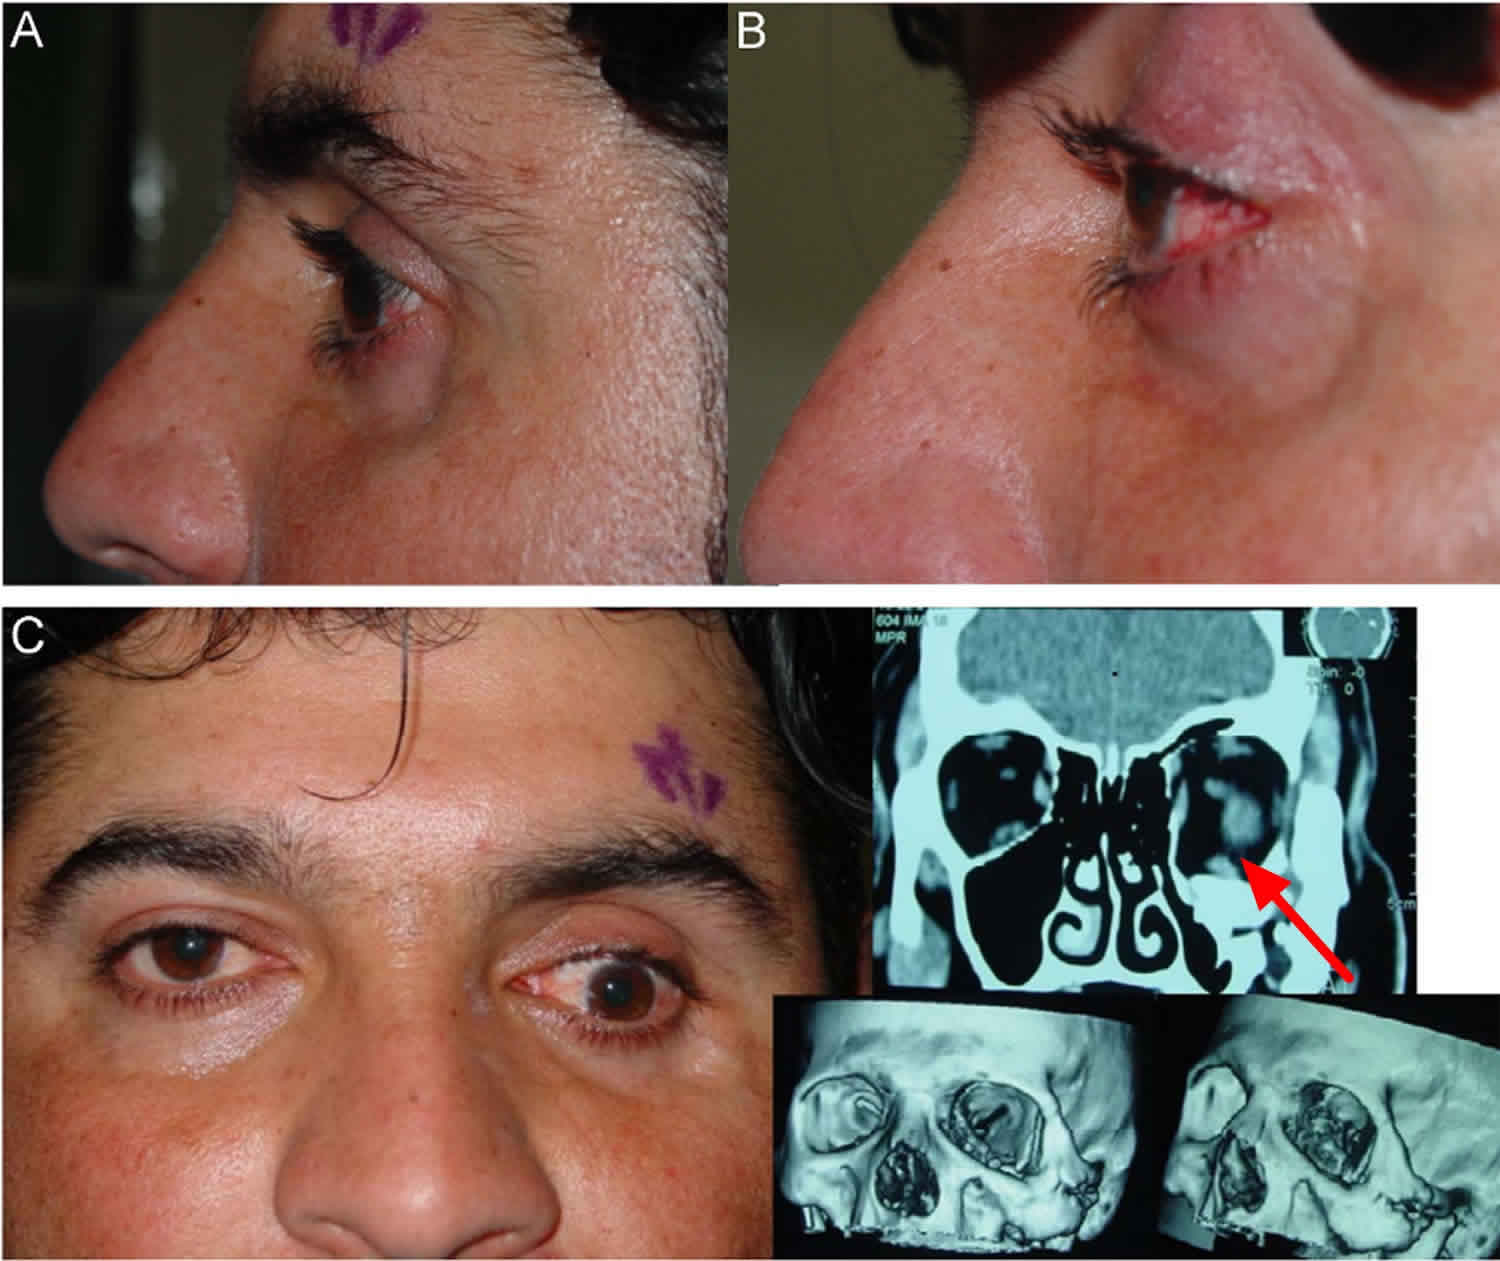 Enophthalmos due to blow-out fracture